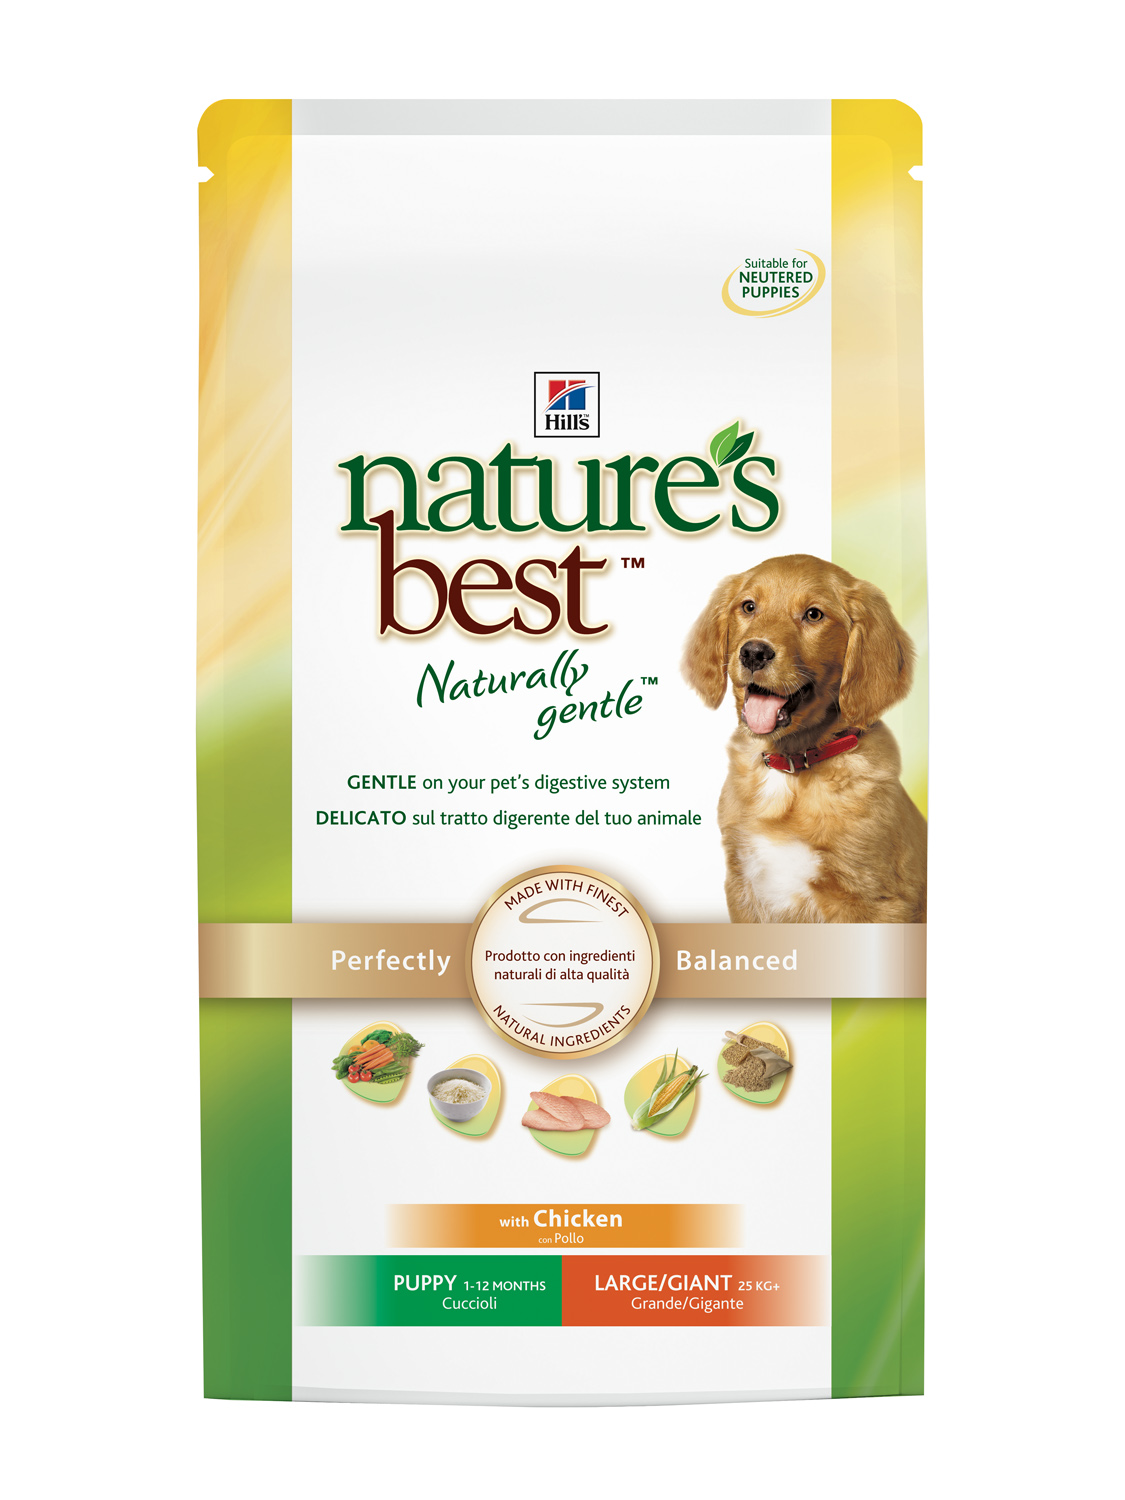 Hills Natures Best Large/Giant Breed Chicken Puppy Food